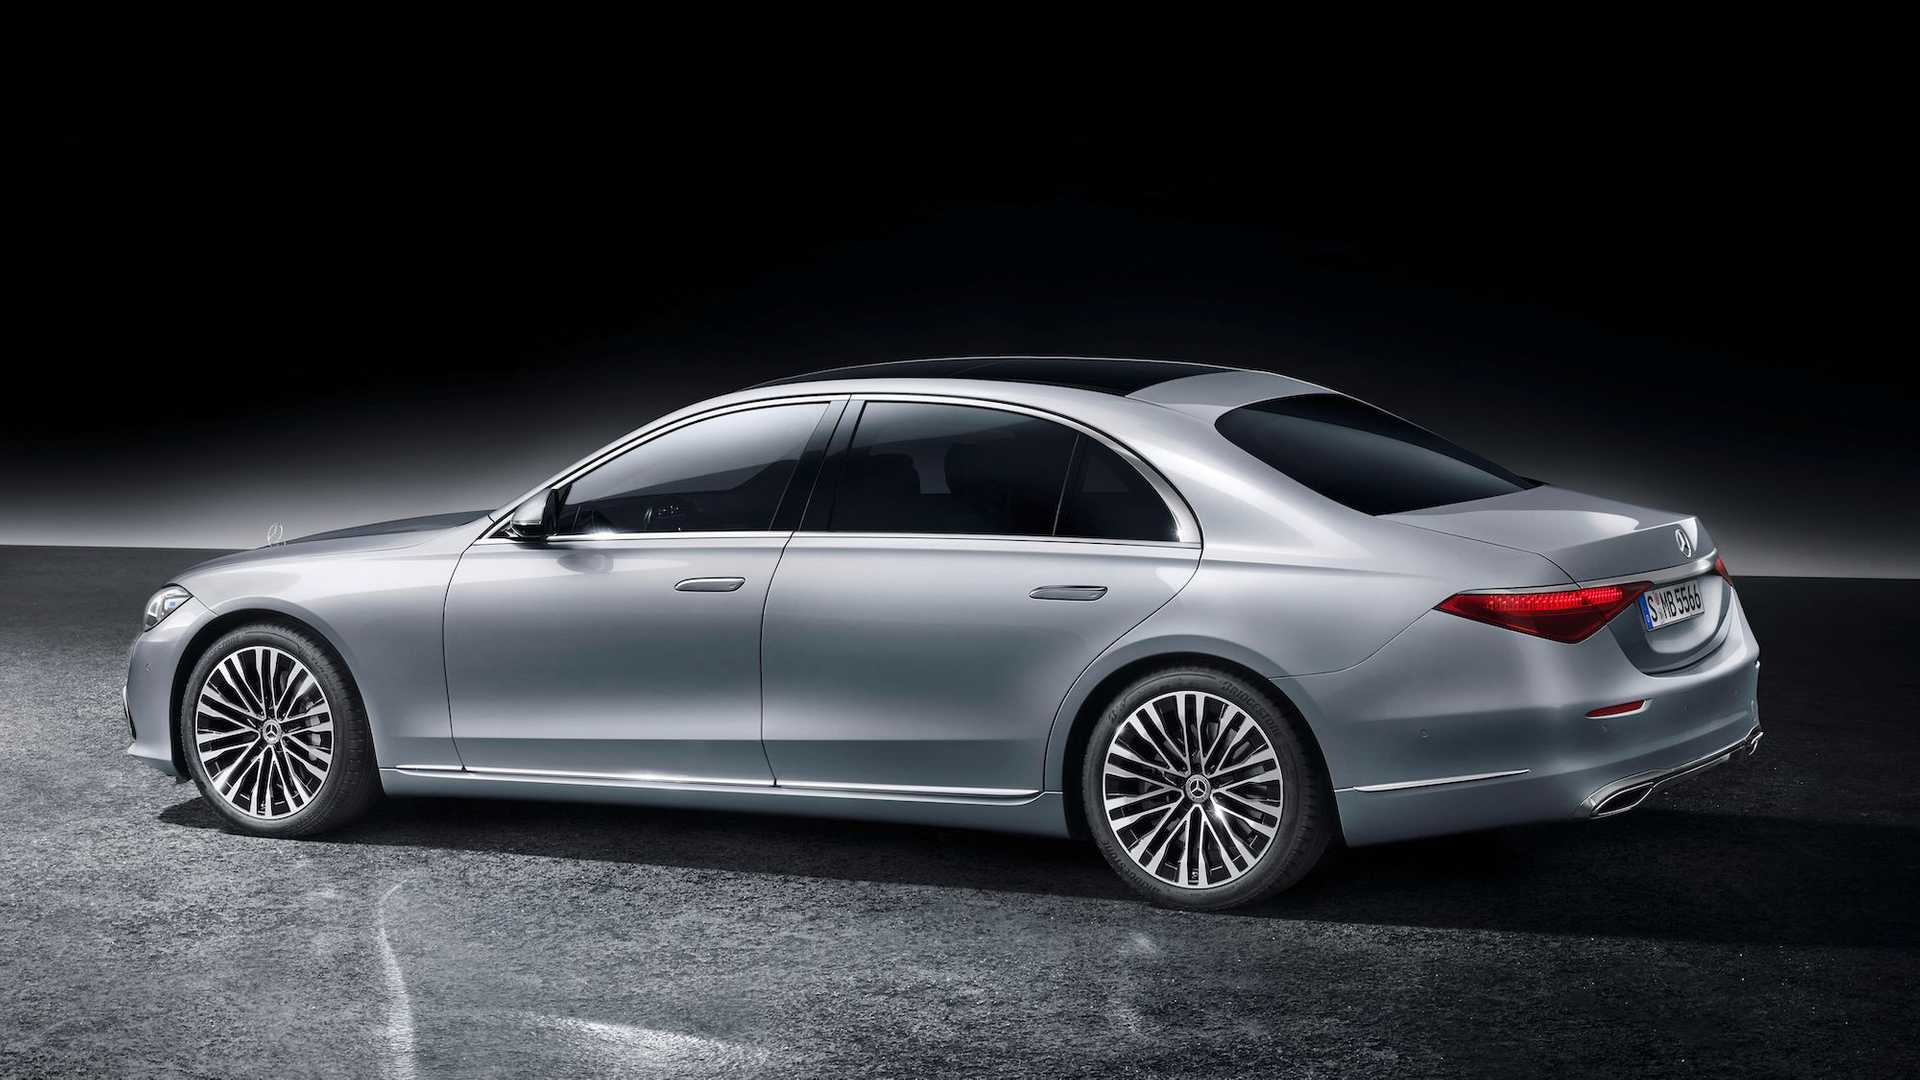 2021 Mercedes S-Class Revealed: Iconic Looks, Modern Tech ...